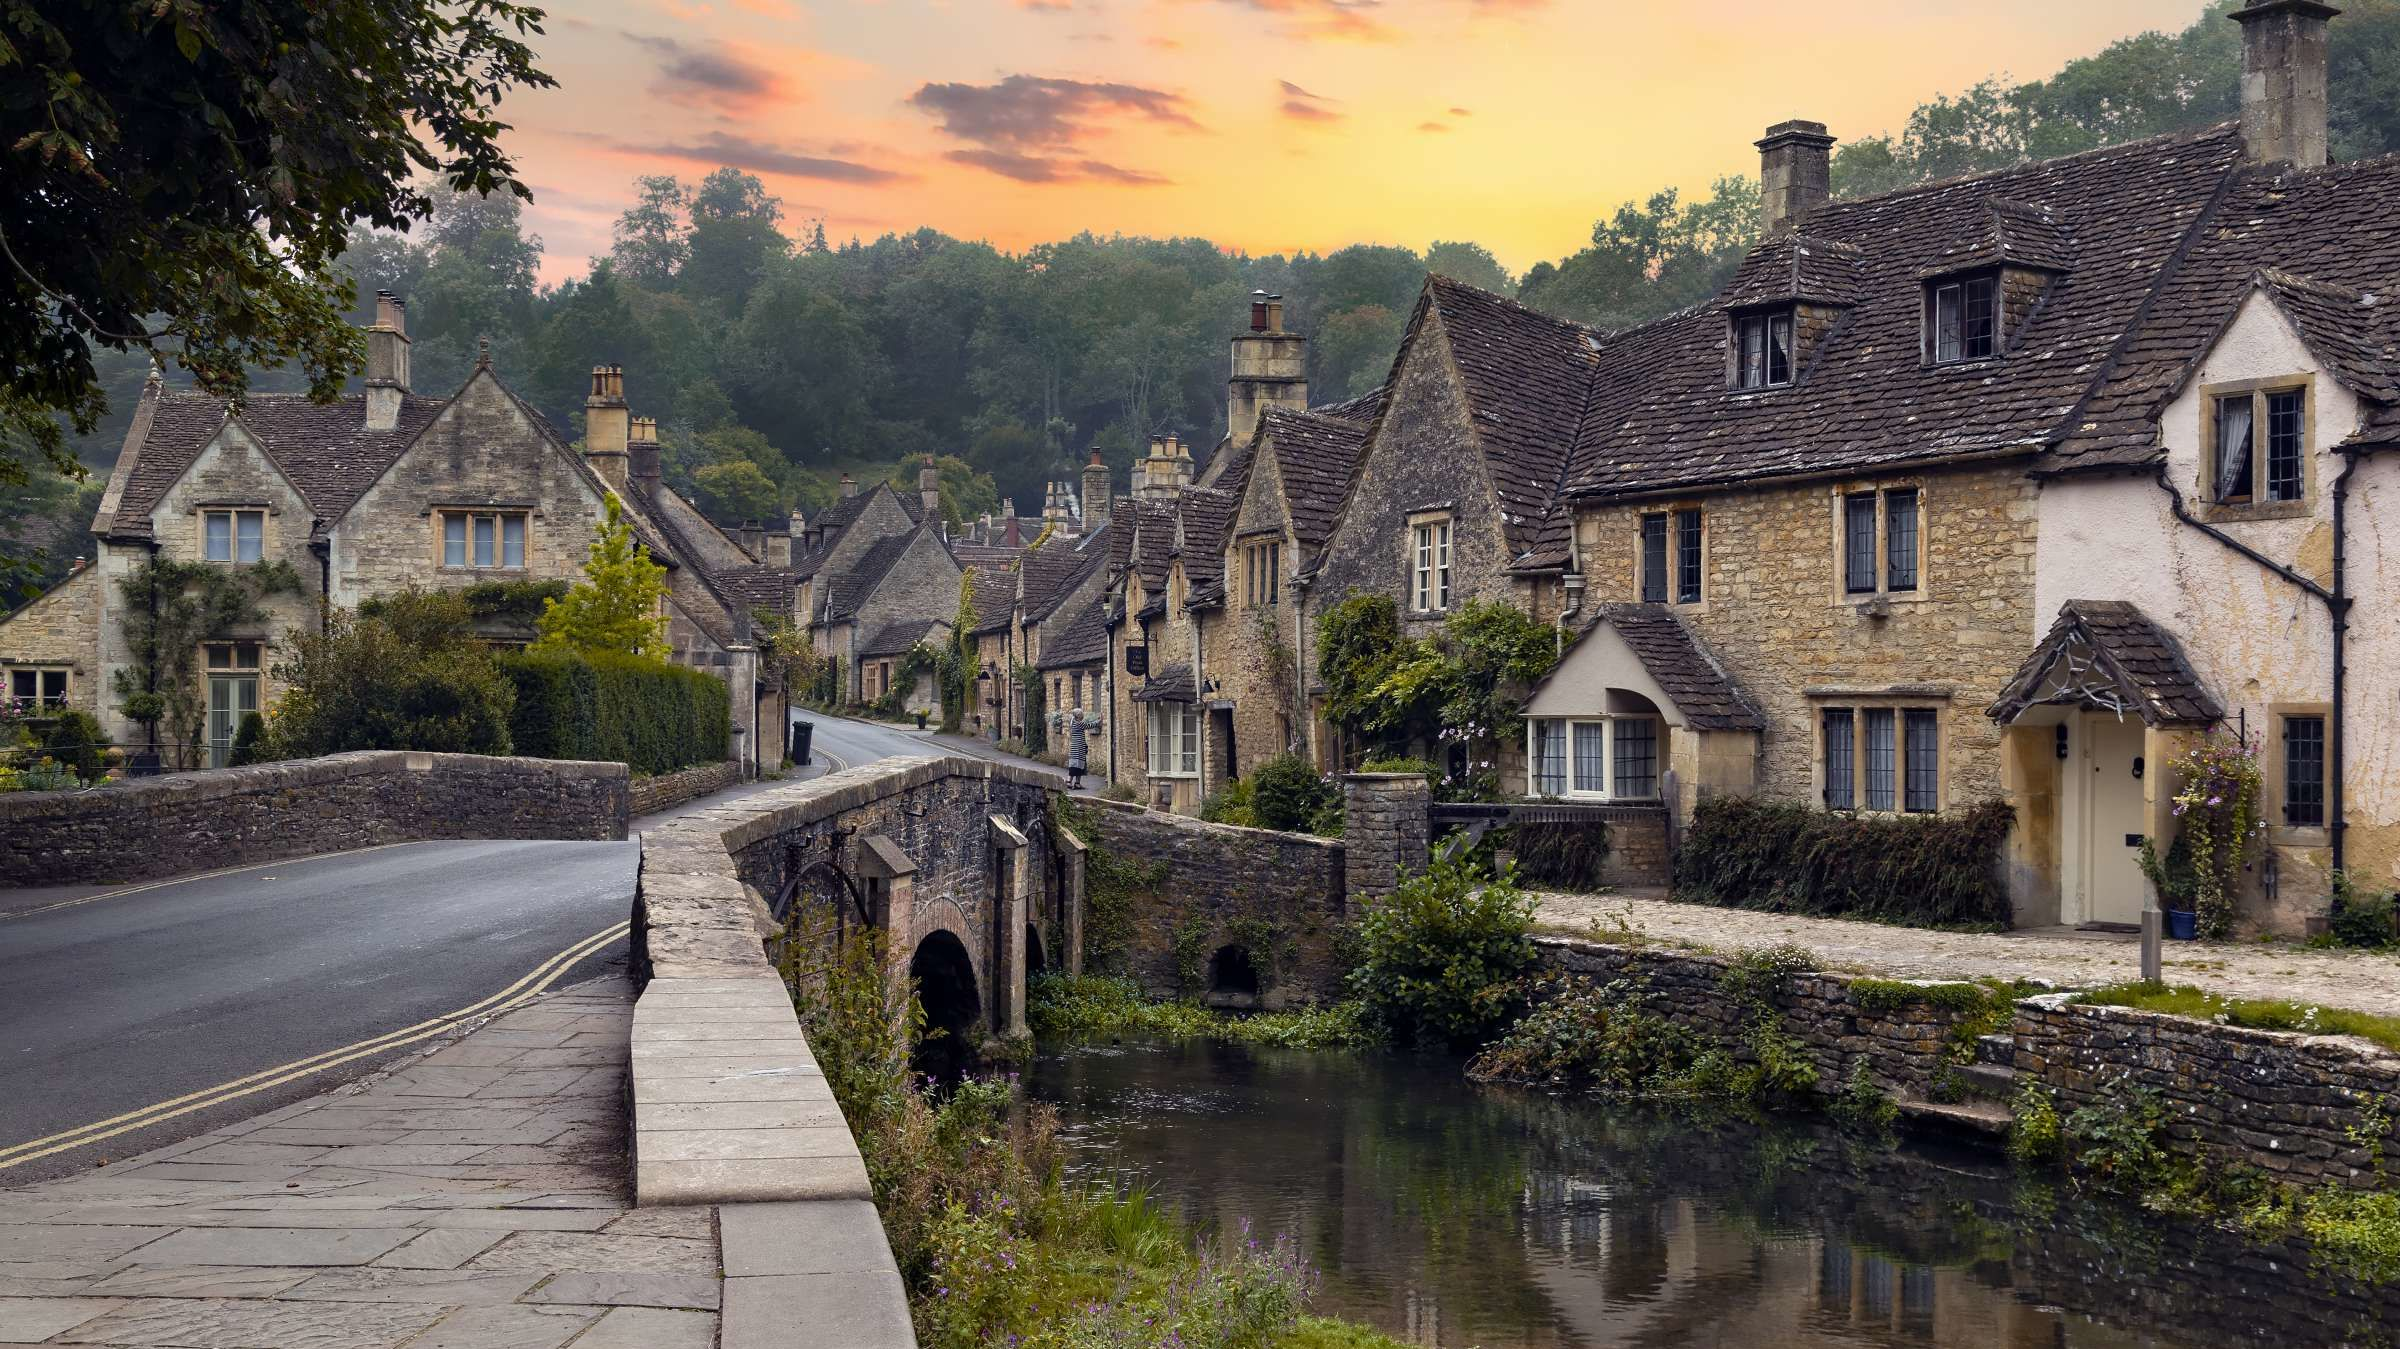 The 20 Most Idyllic Towns and Villages in the UK